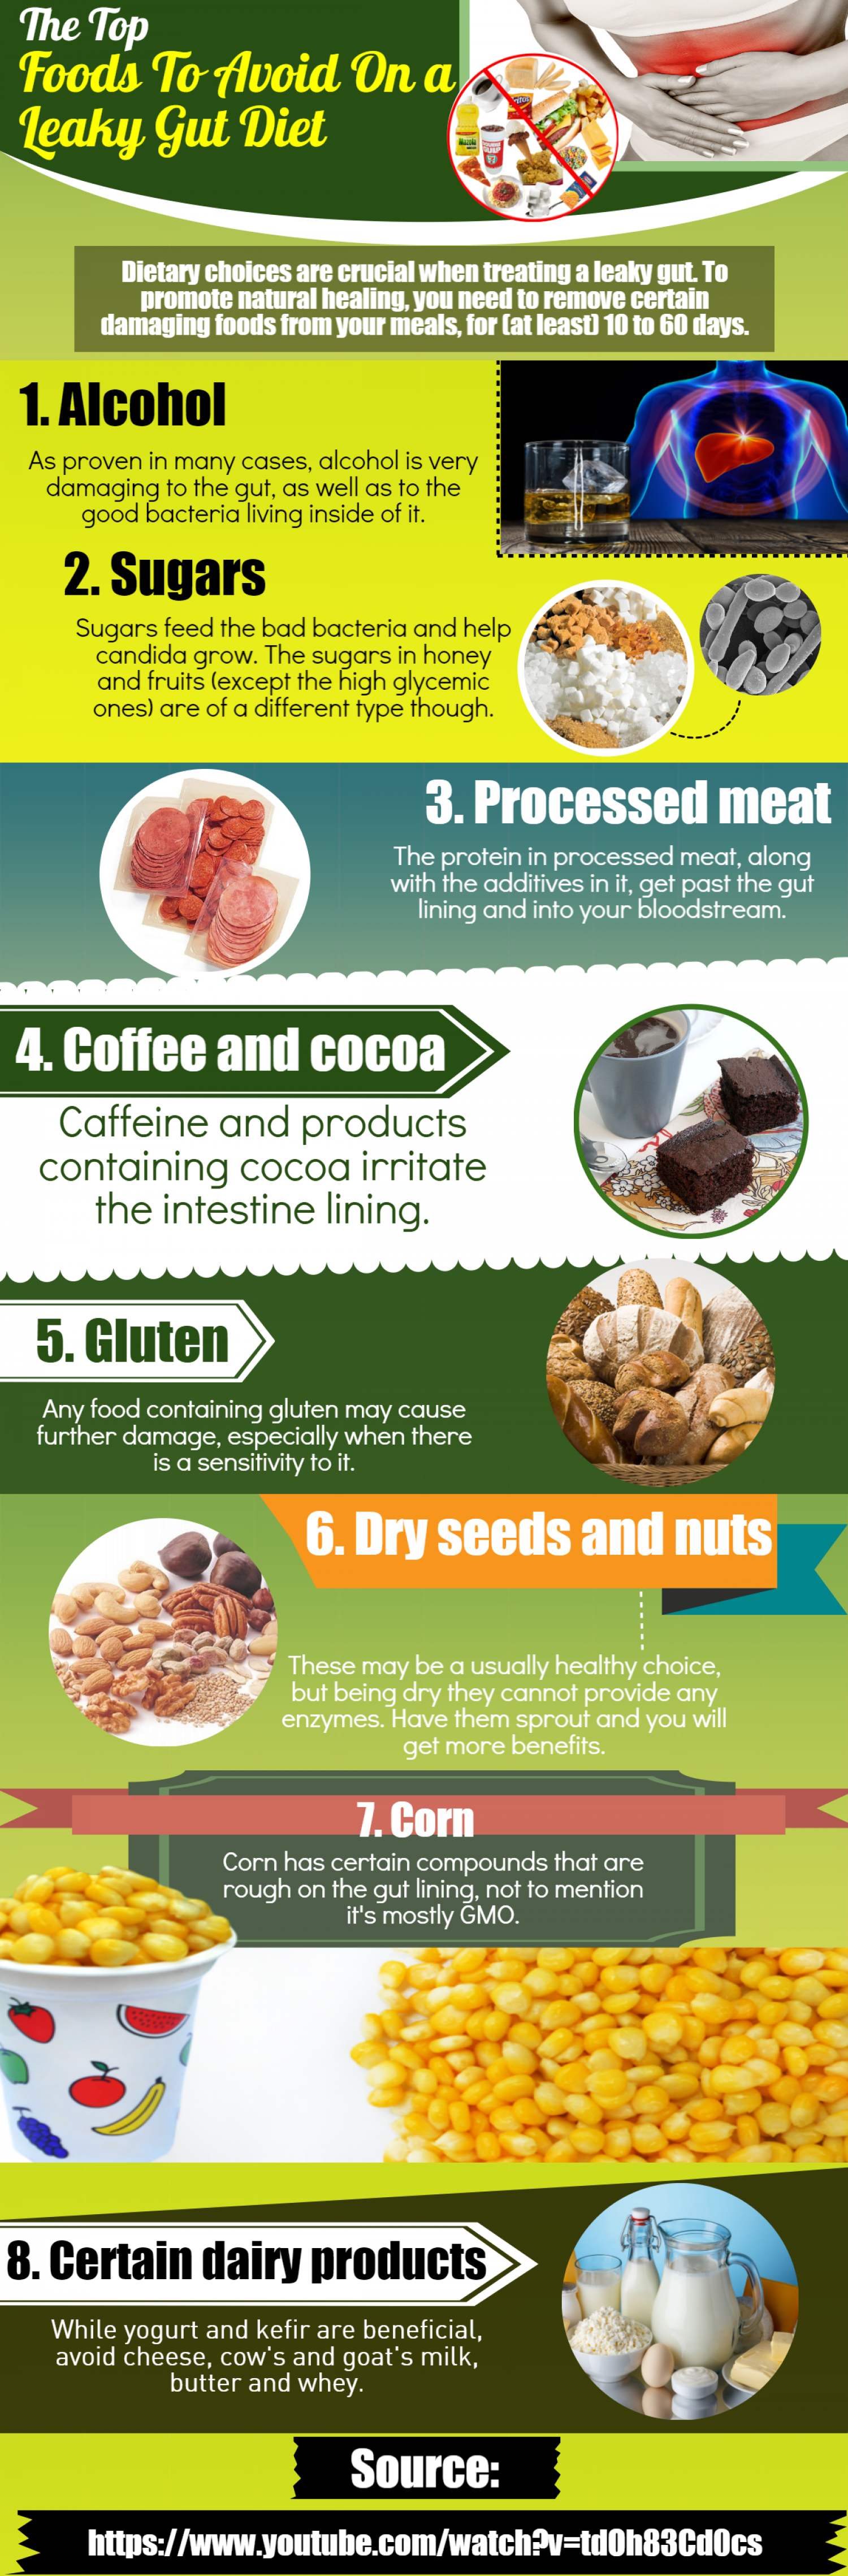 The Top Foods To Avoid On A Leaky Gut Diet Are You Aware That There Are A Lot Of People All Over The World Who Are Su Leaky Gut Diet